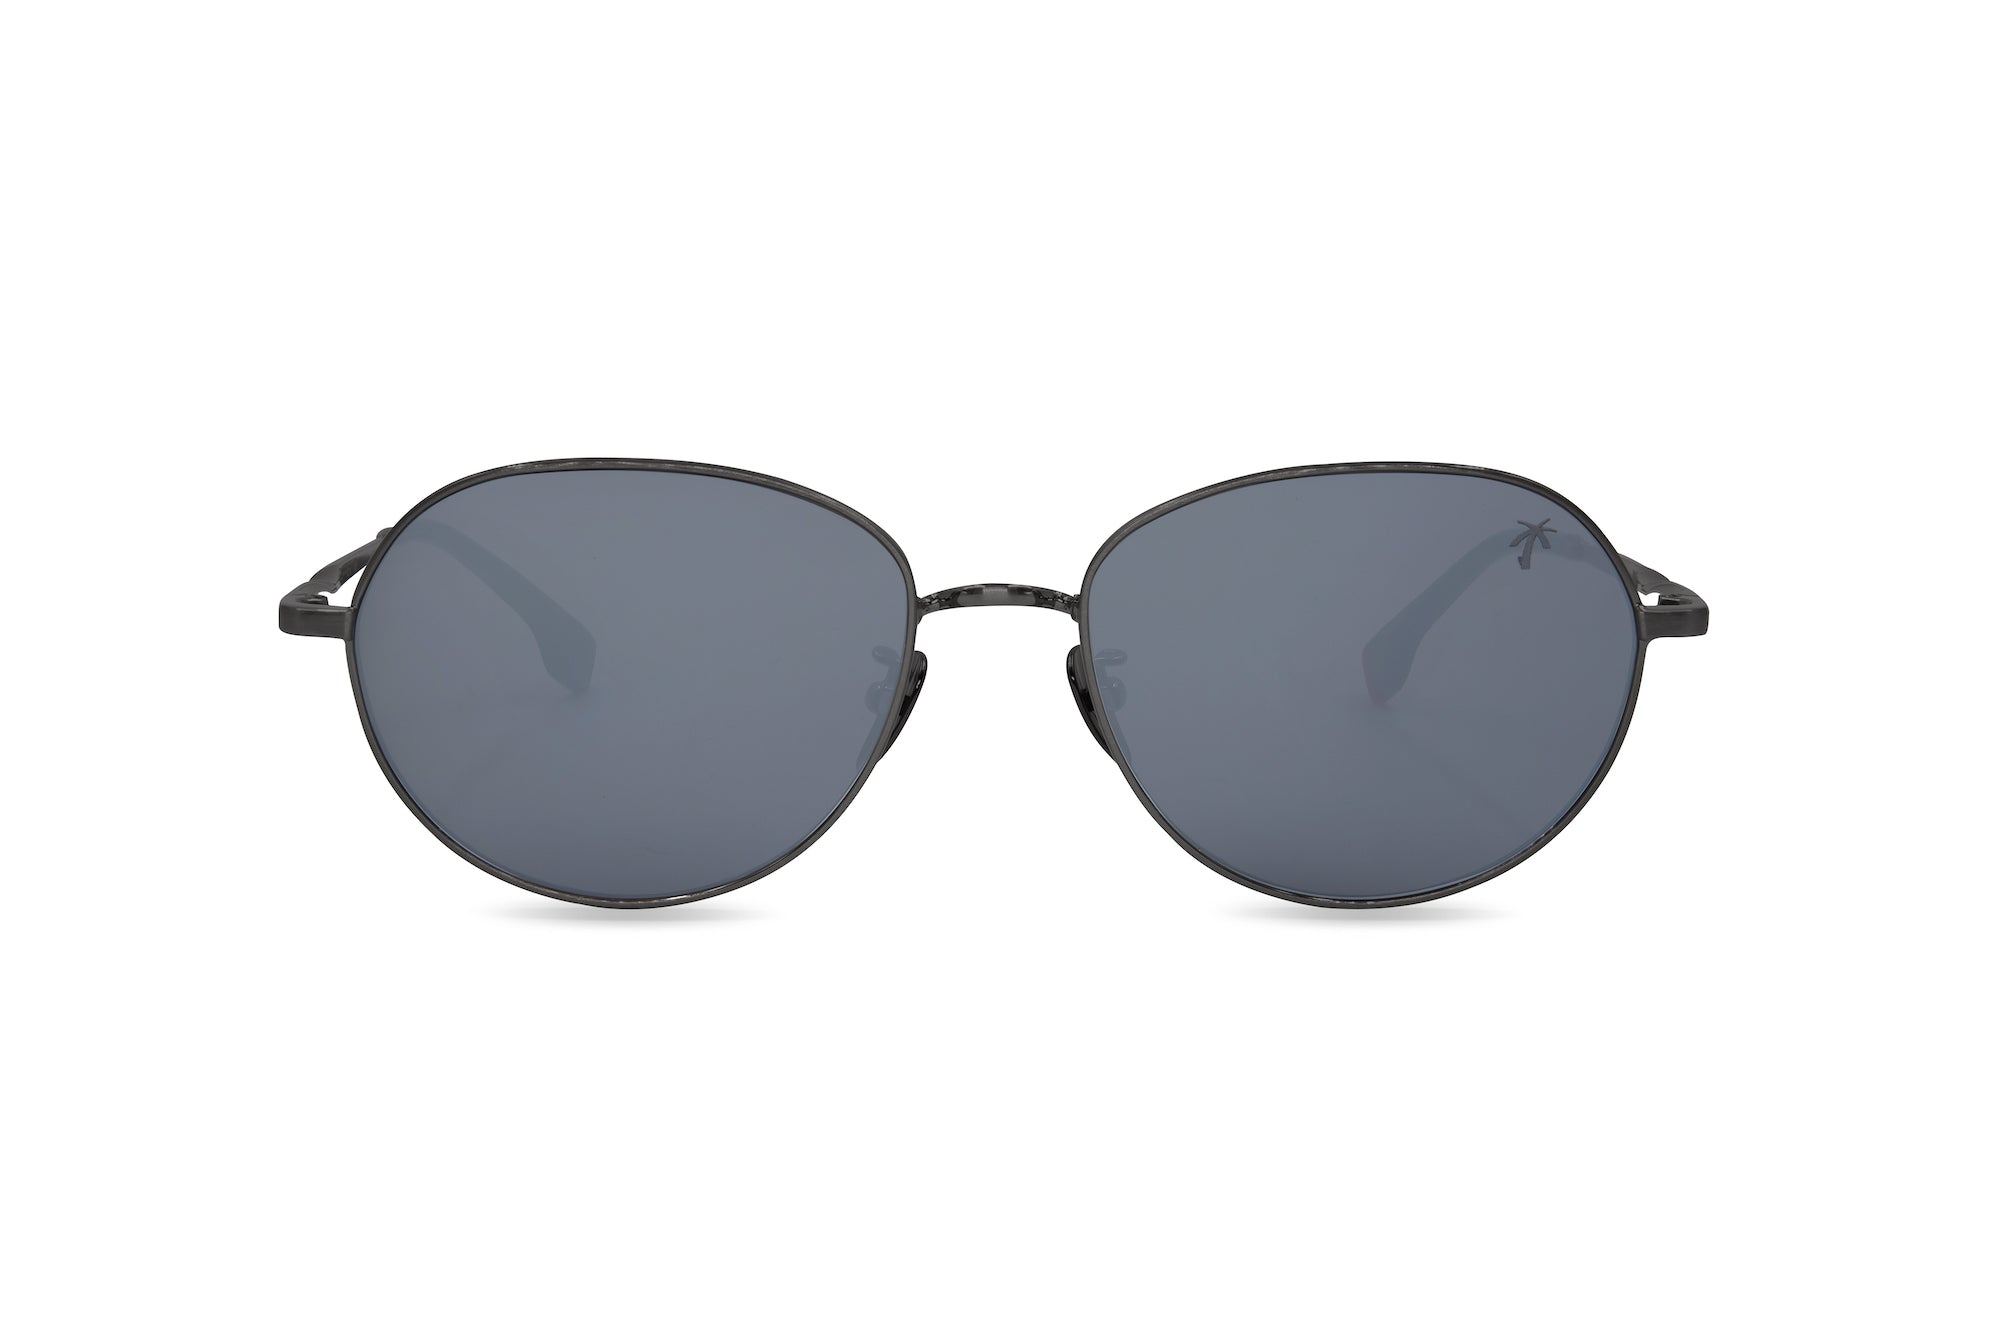 Loyola in Dark Blue - Peppertint - Designer sunglasses